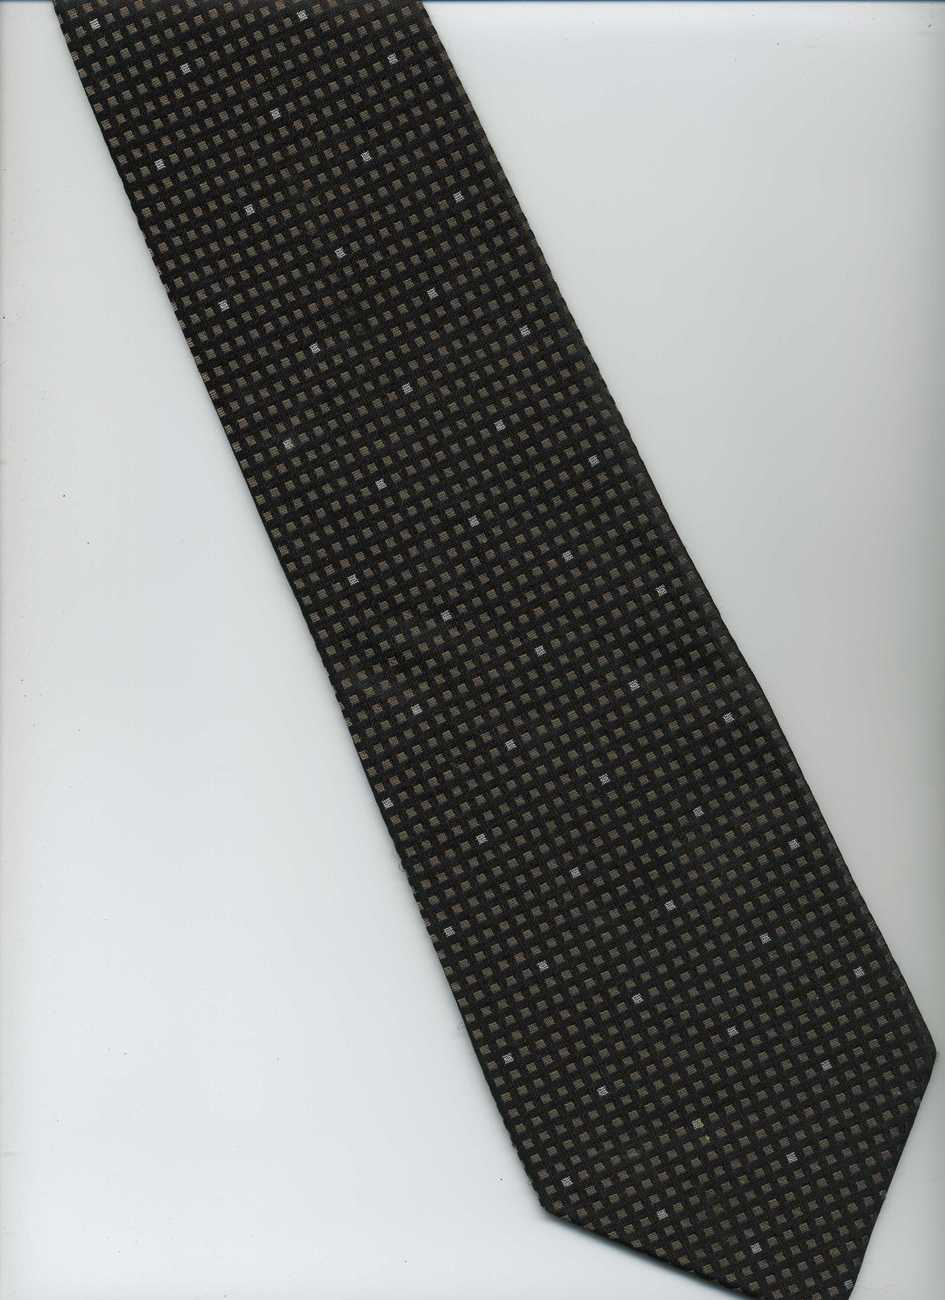 CALVIN KLEIN Tie   Black  Beige  Silver   Check   Polka Dots Patterns Silk Tie